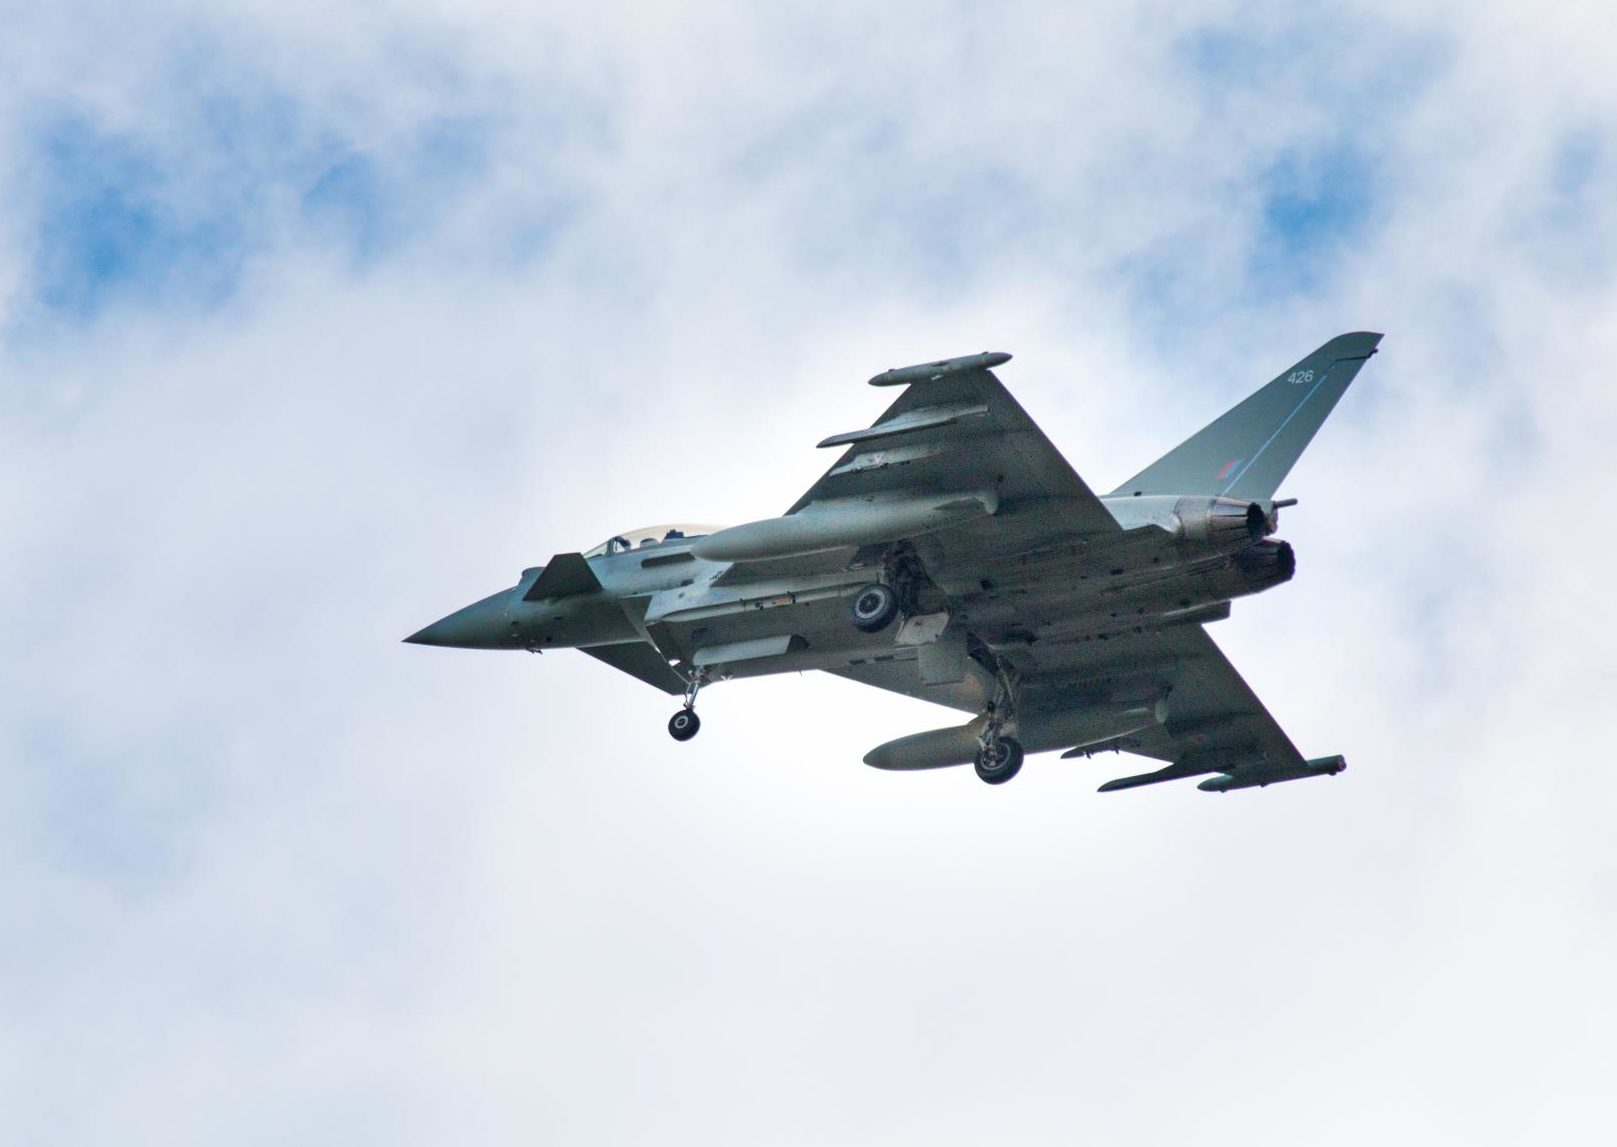 The RAF fighter jet today before the emergency landing